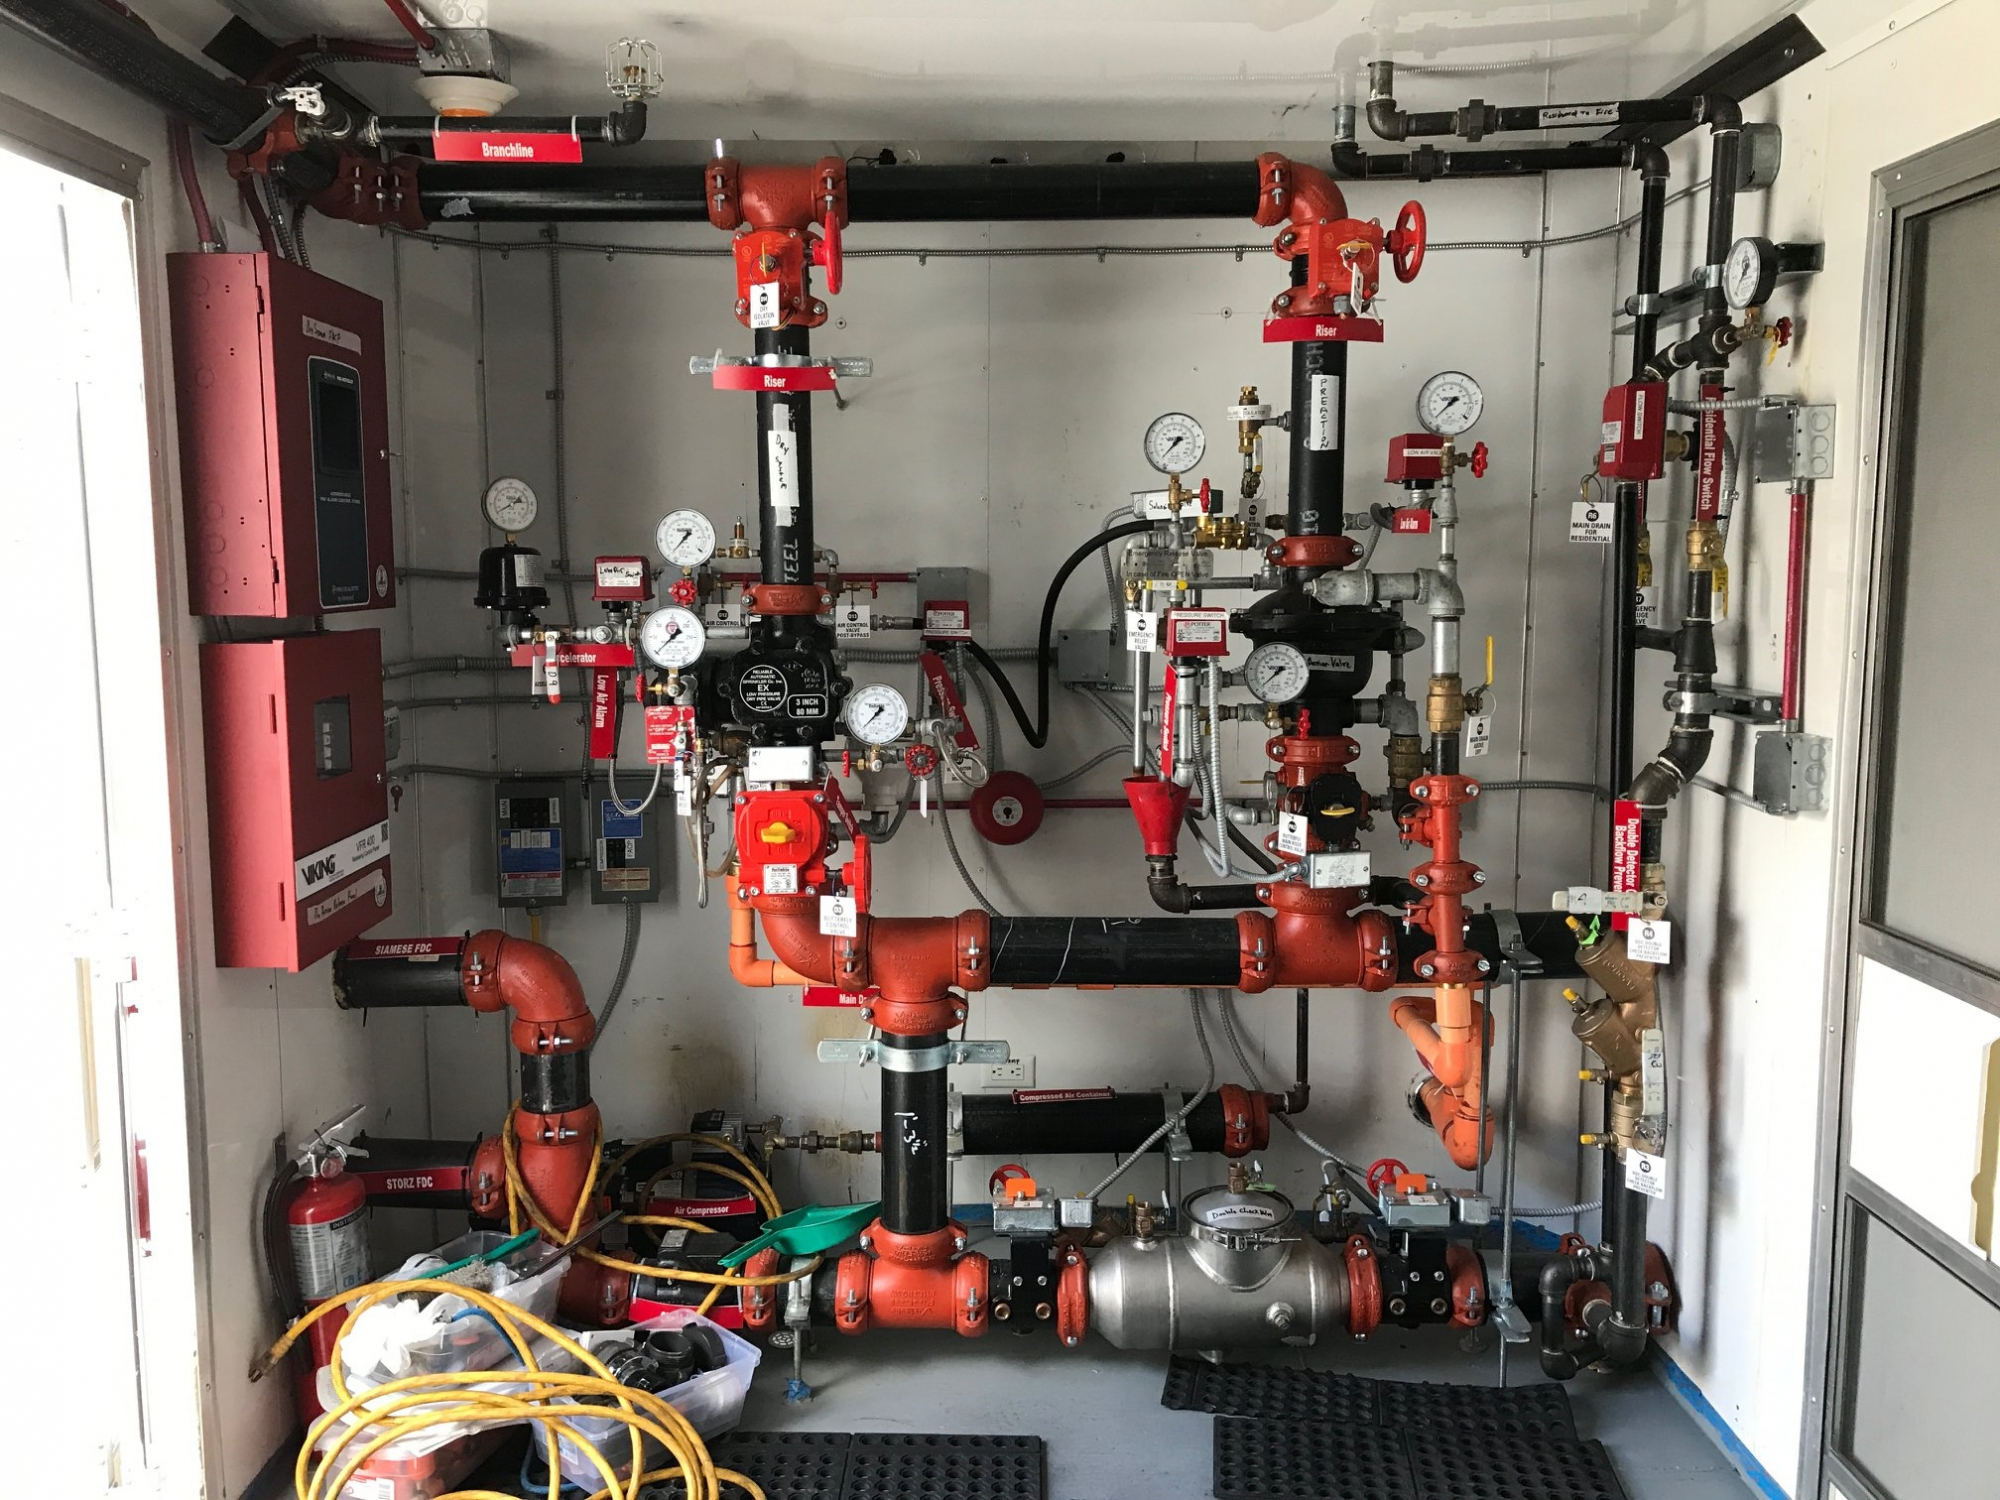 The trailer interior features many types of sprinkler systems that the students will encounter upon entering the profession. It also has a controlled burn room.